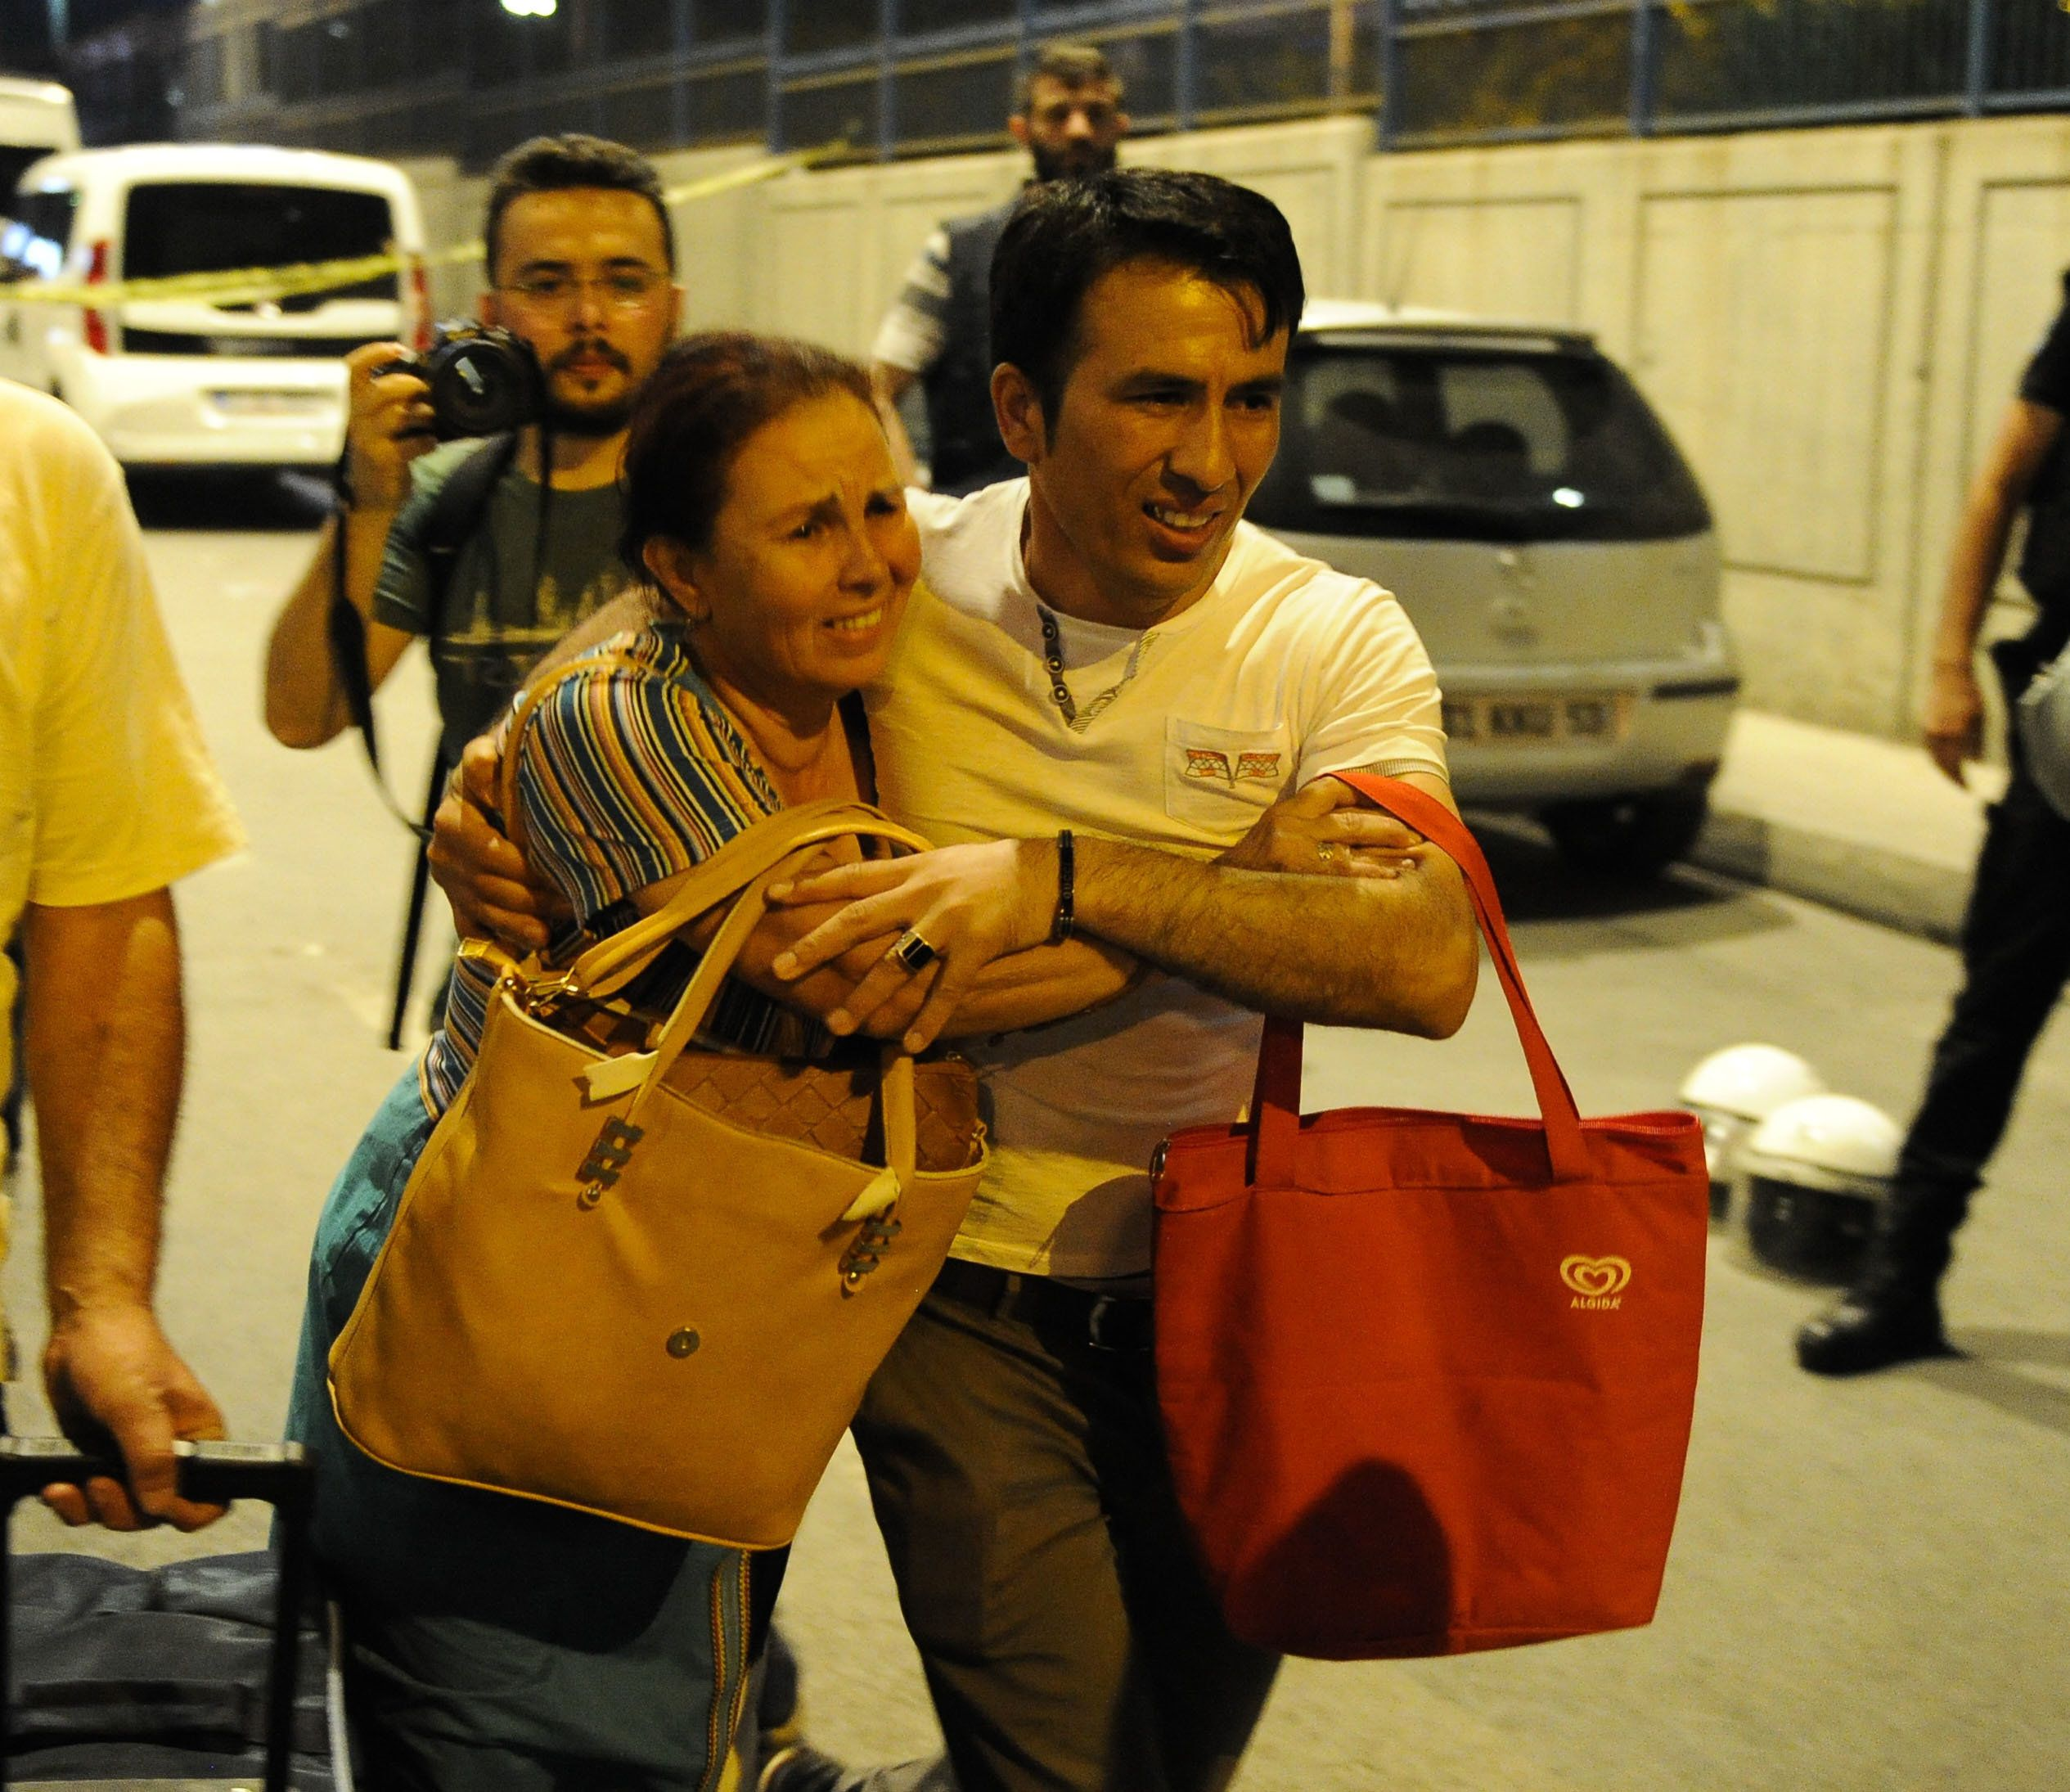 People leaveIstanbul's Ataturk Airport afteran attack by suicide